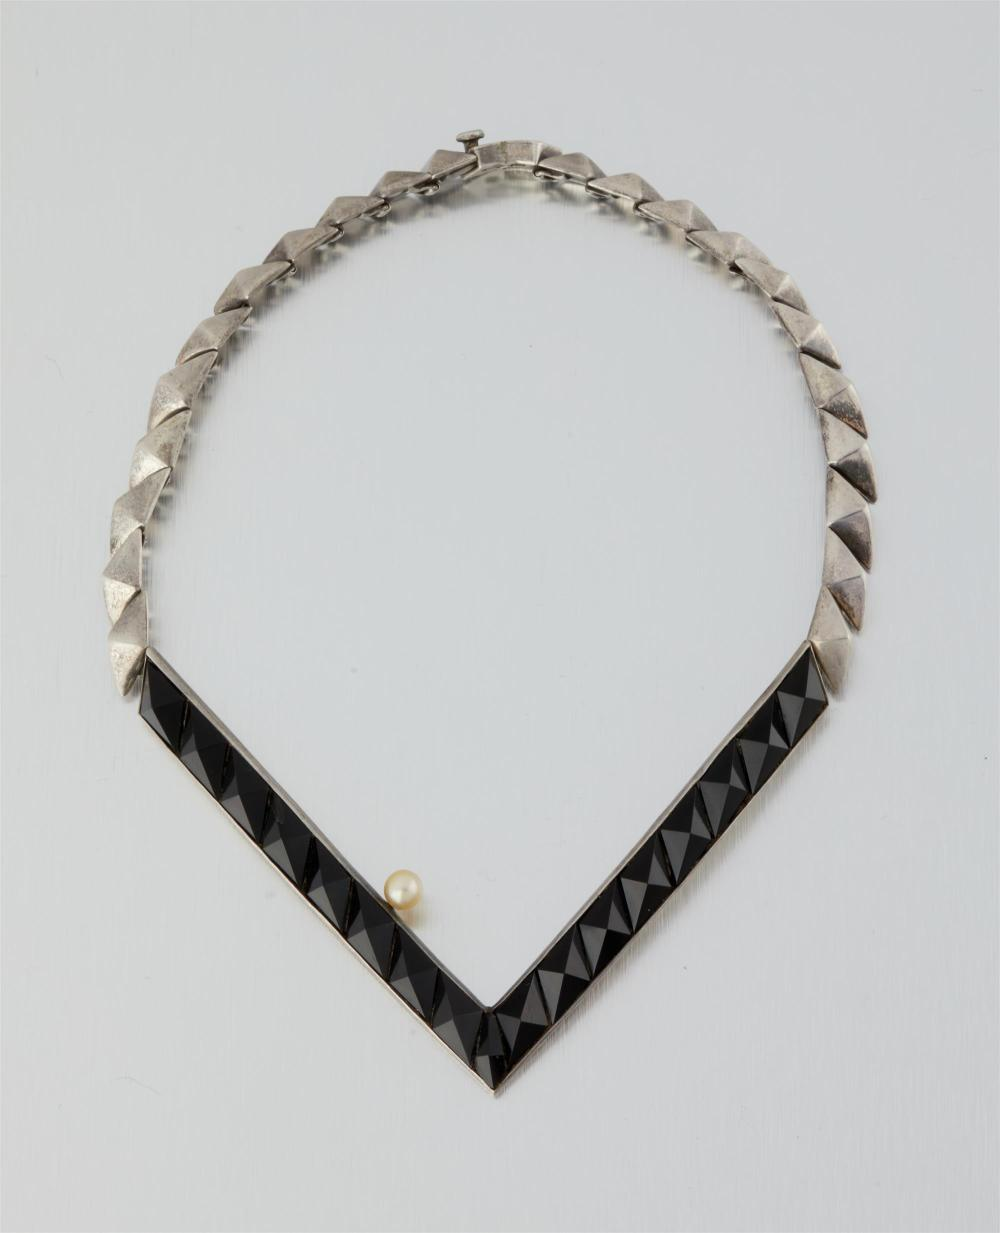 An Antonio Pineda silver, obsidian and pearl necklace